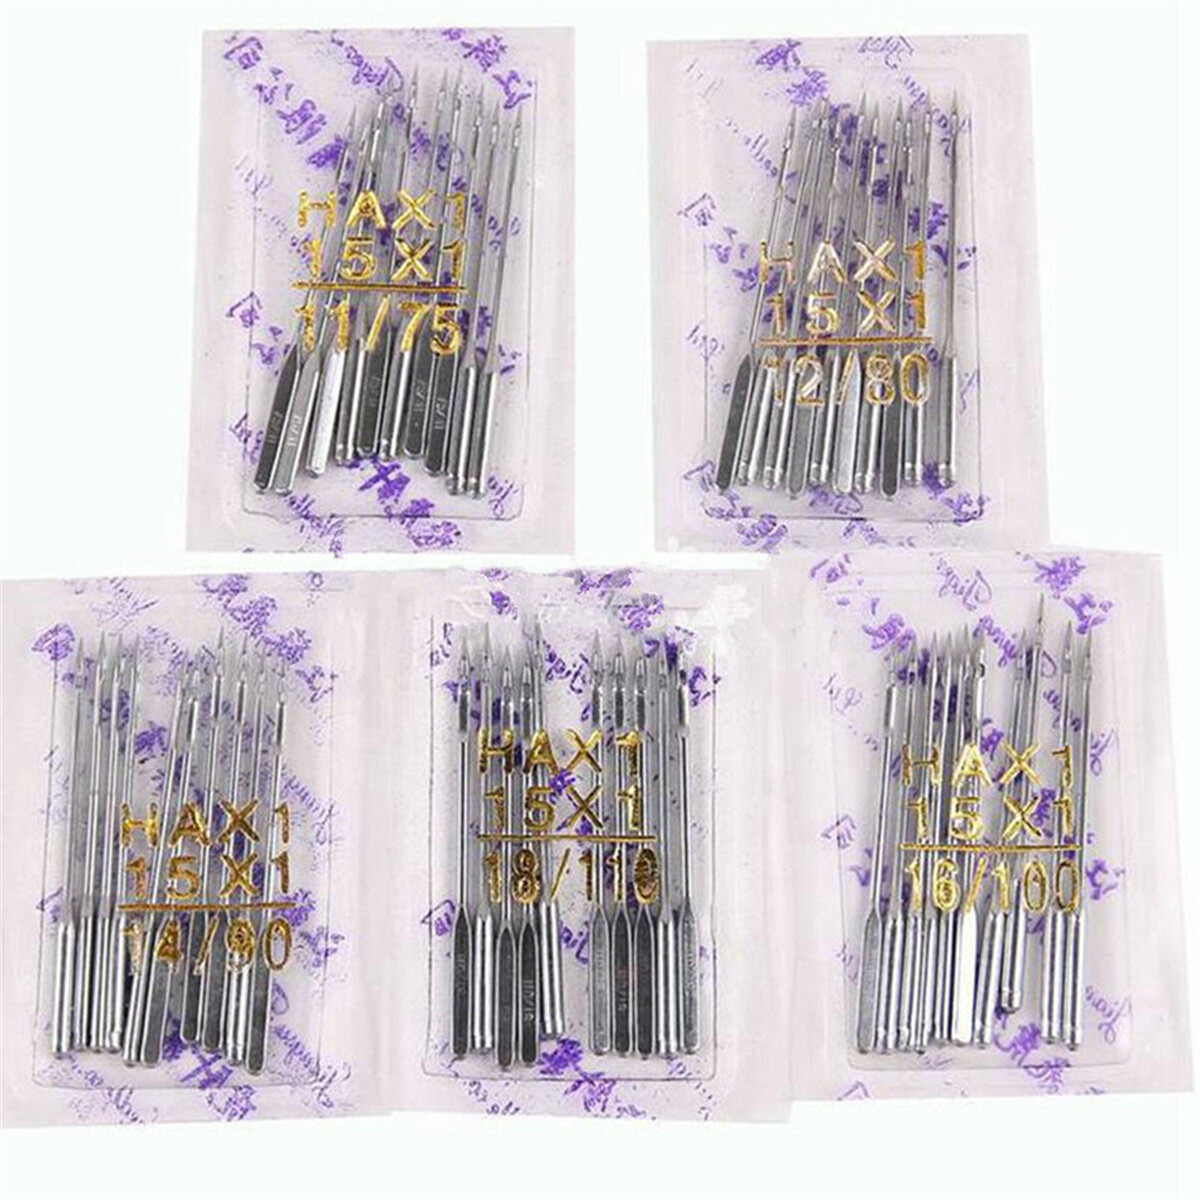 10pc Sewing Machine Needles UNIVERSAL 90//14 100//16 110//18 Fits All Brands